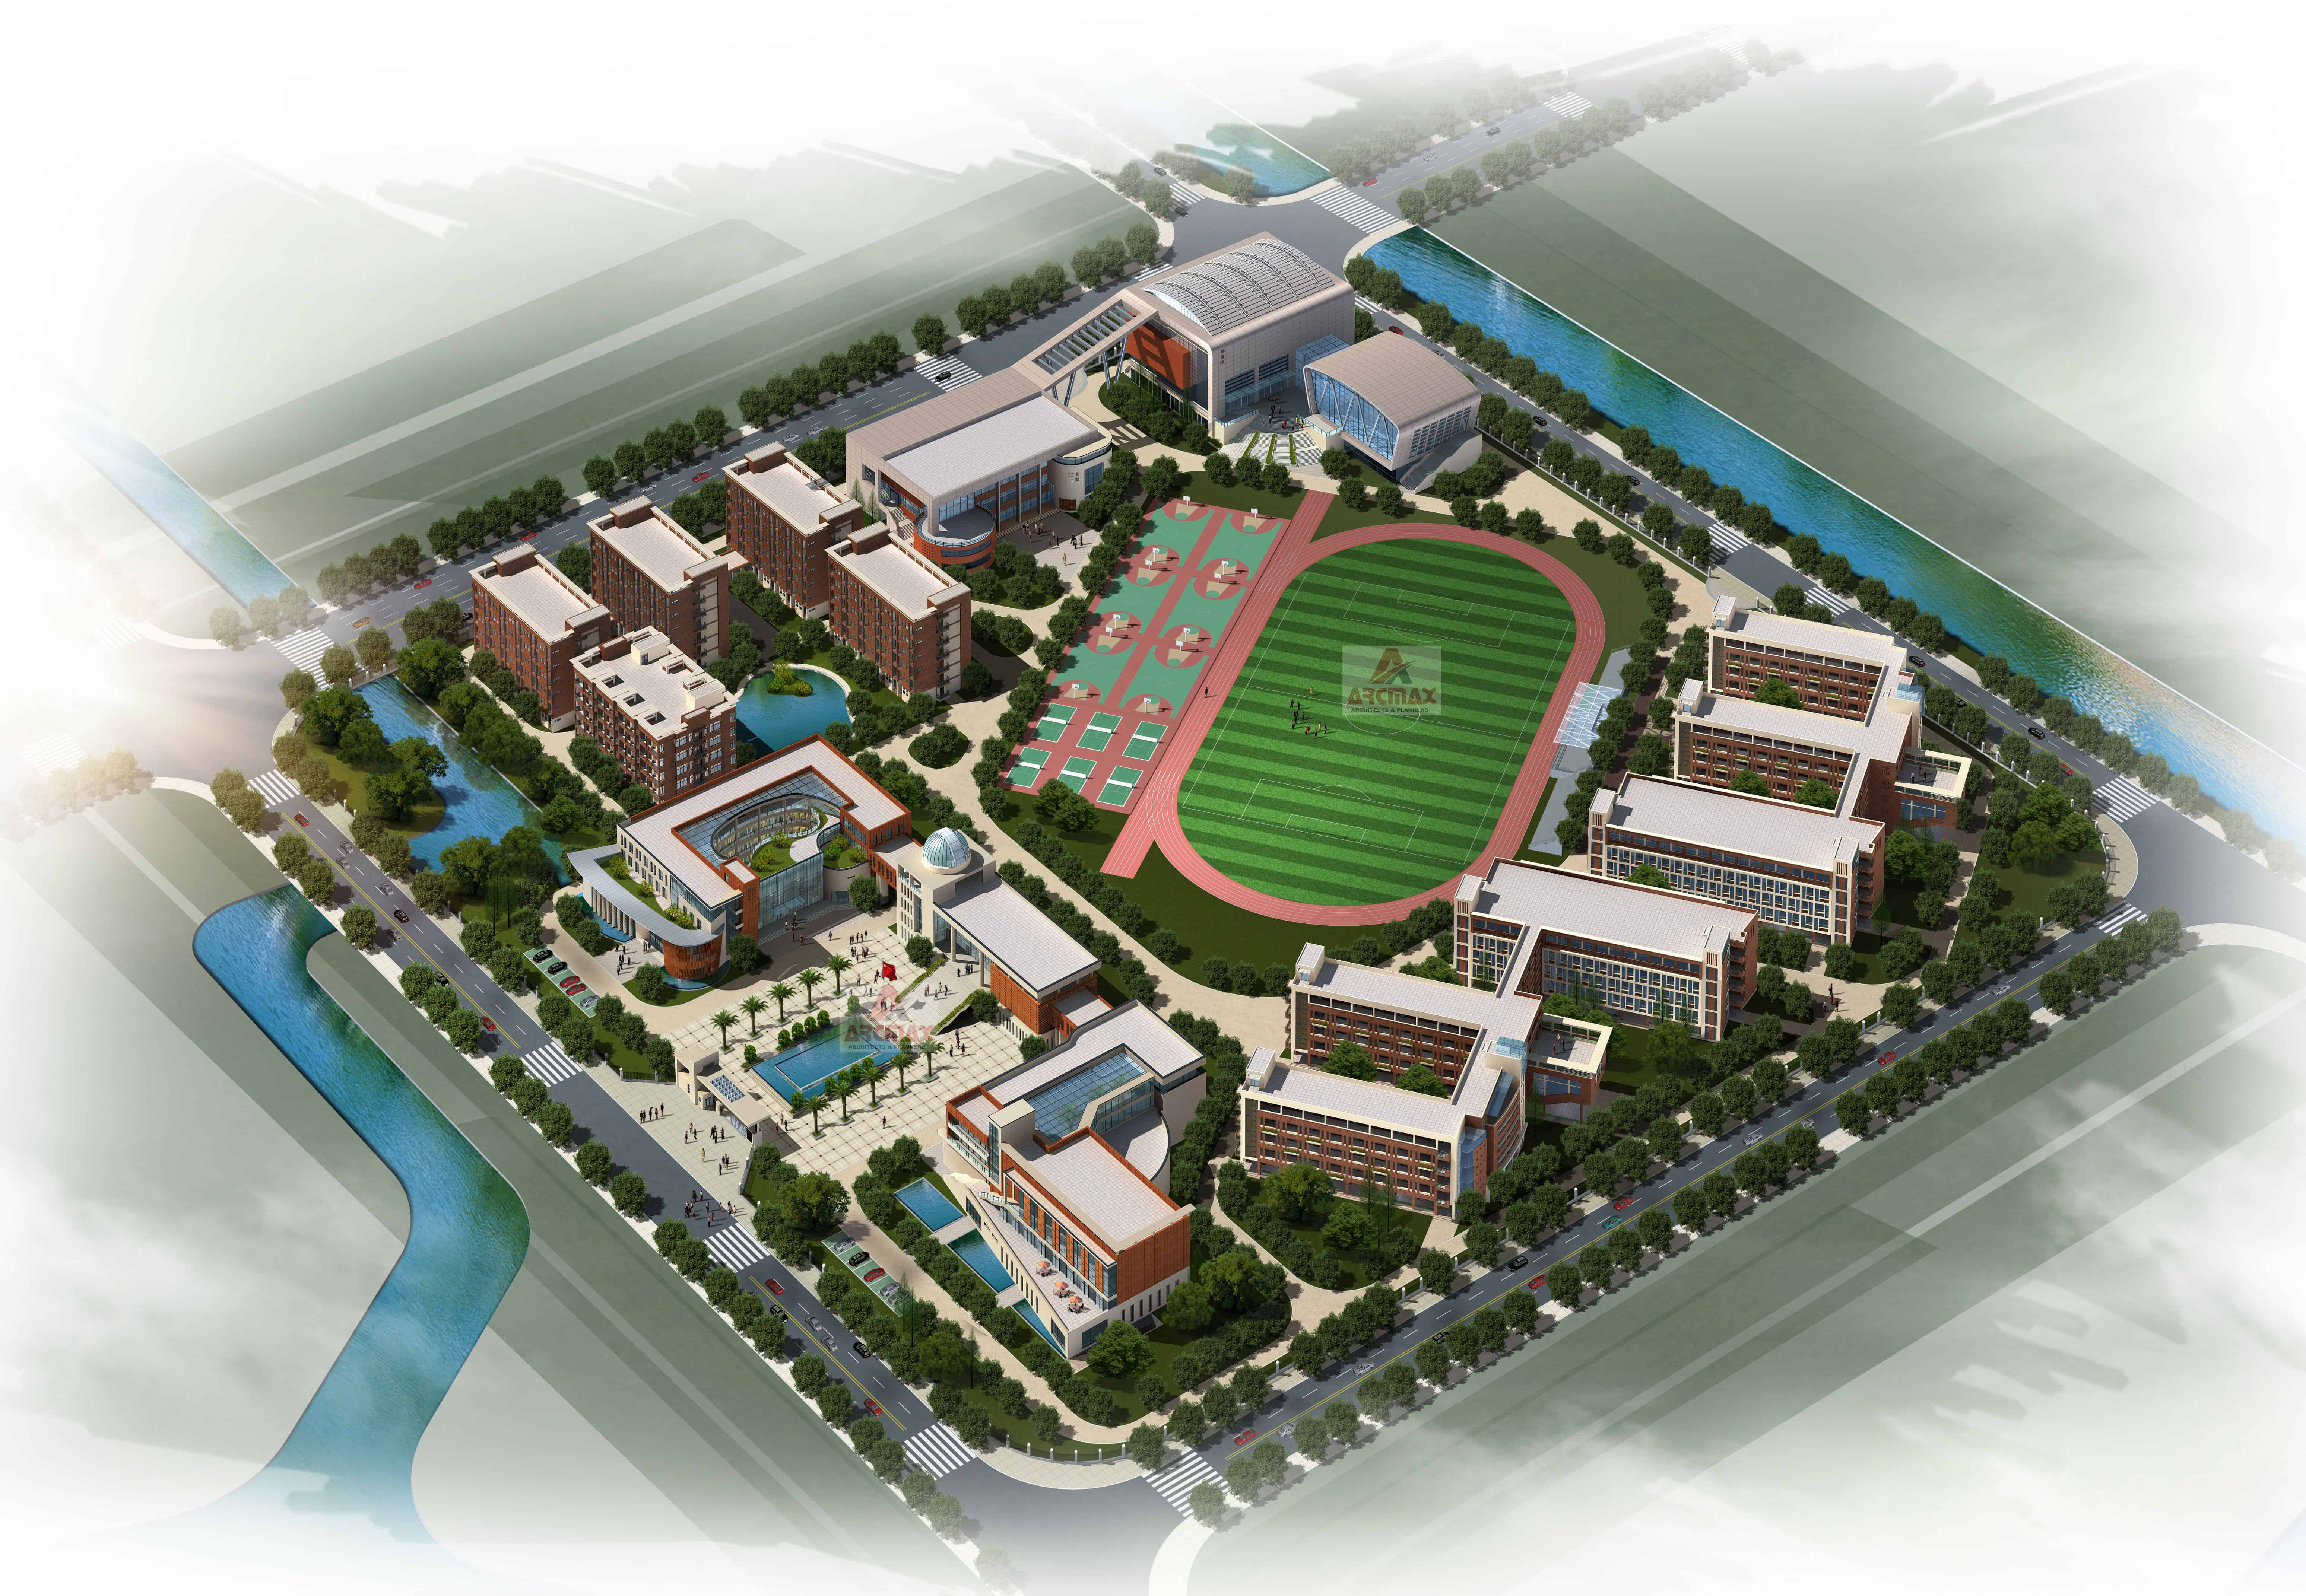 Cbse school building design and planning services including floor plans and elevations